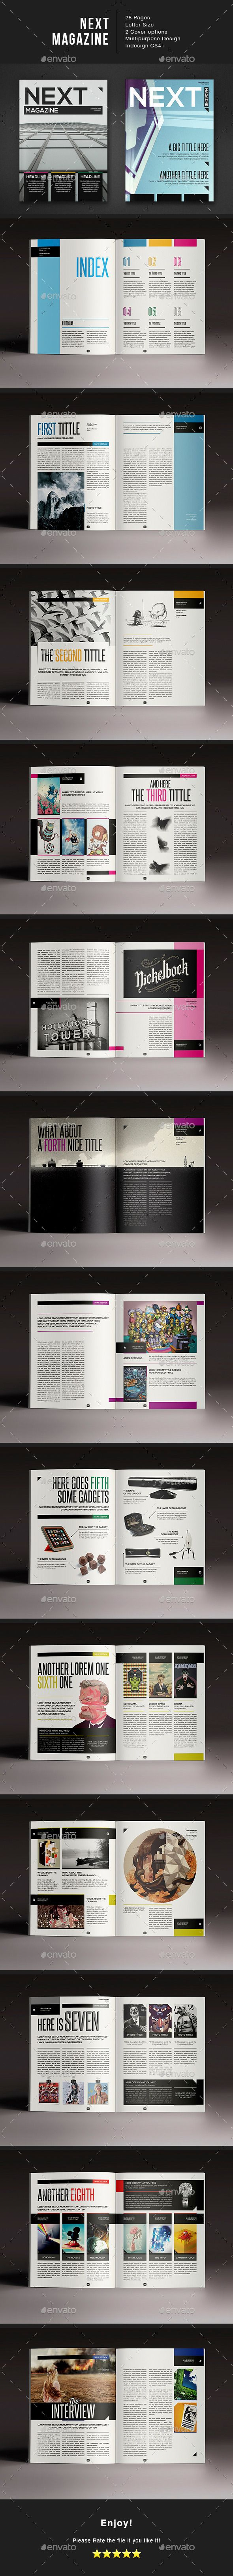 Next Magazine Indesign Template | Indesign templates, Template and ...